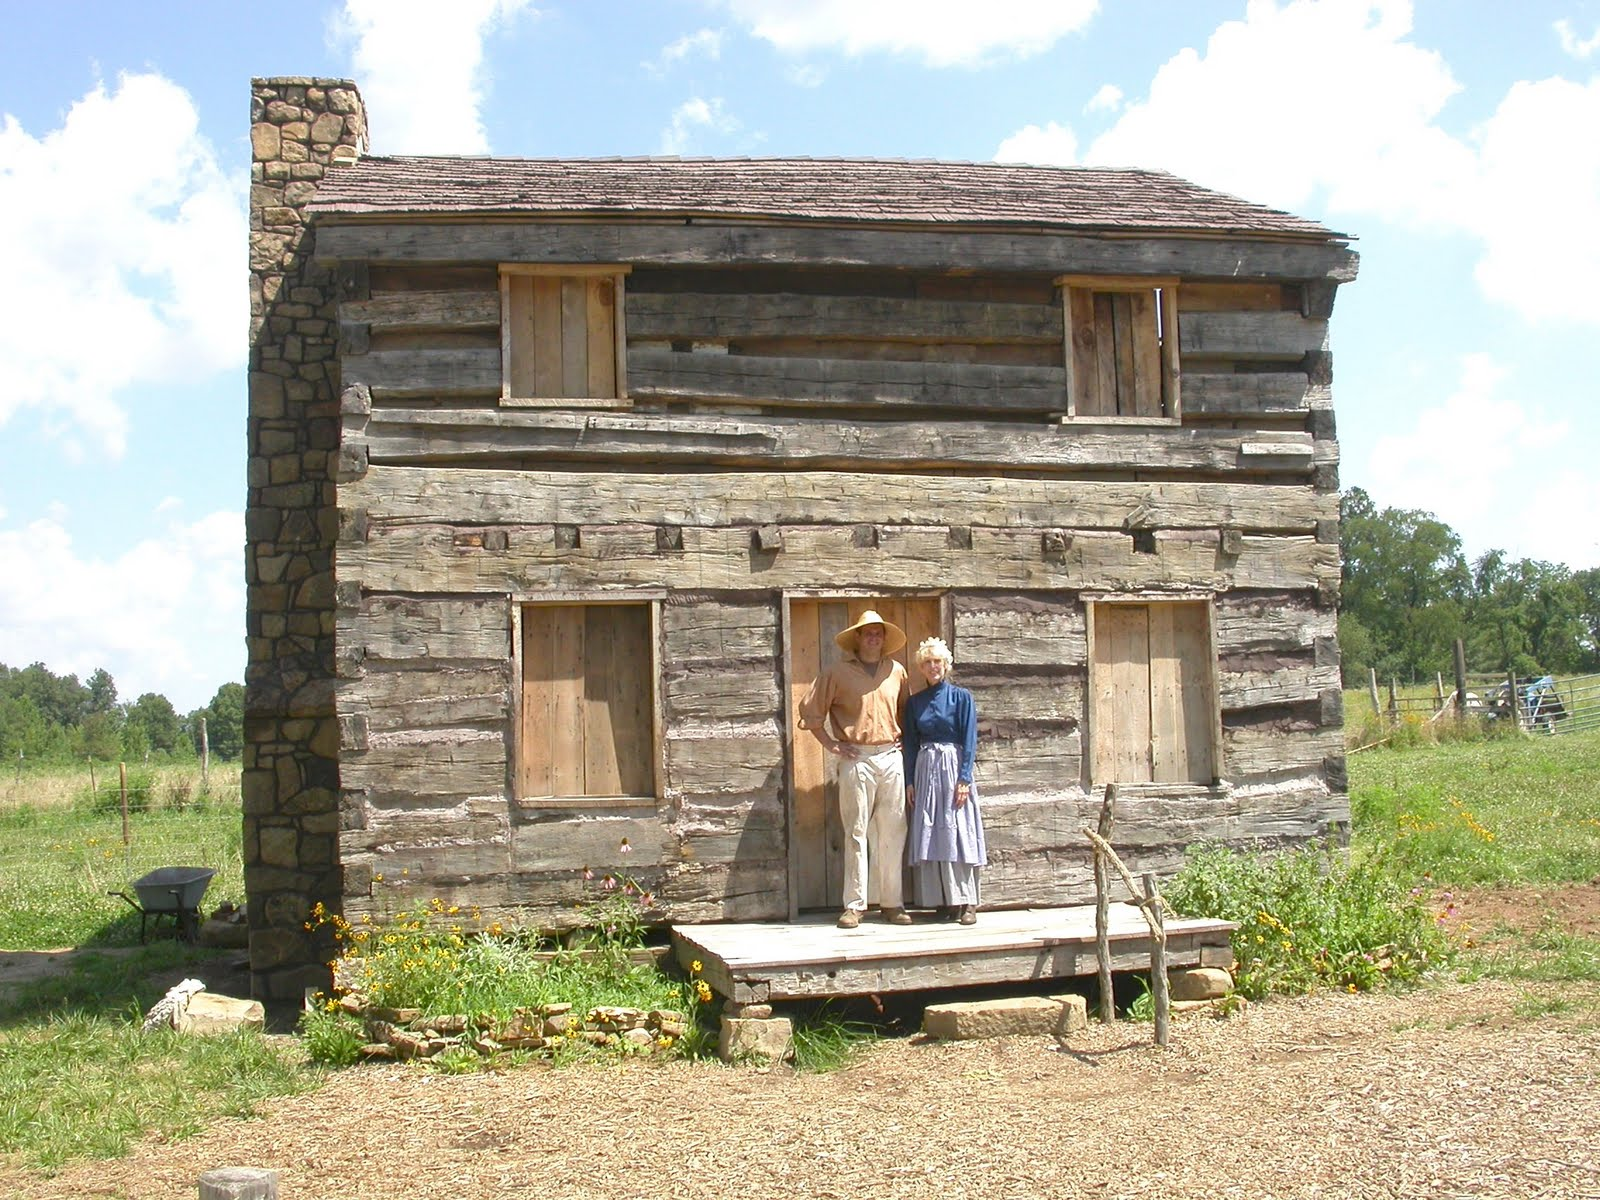 Indiana spencer county rockport - Lincoln Pioneer Village Museum Will Also Host The Fall Rendezvous From October 29 20 In Rockport Indiana